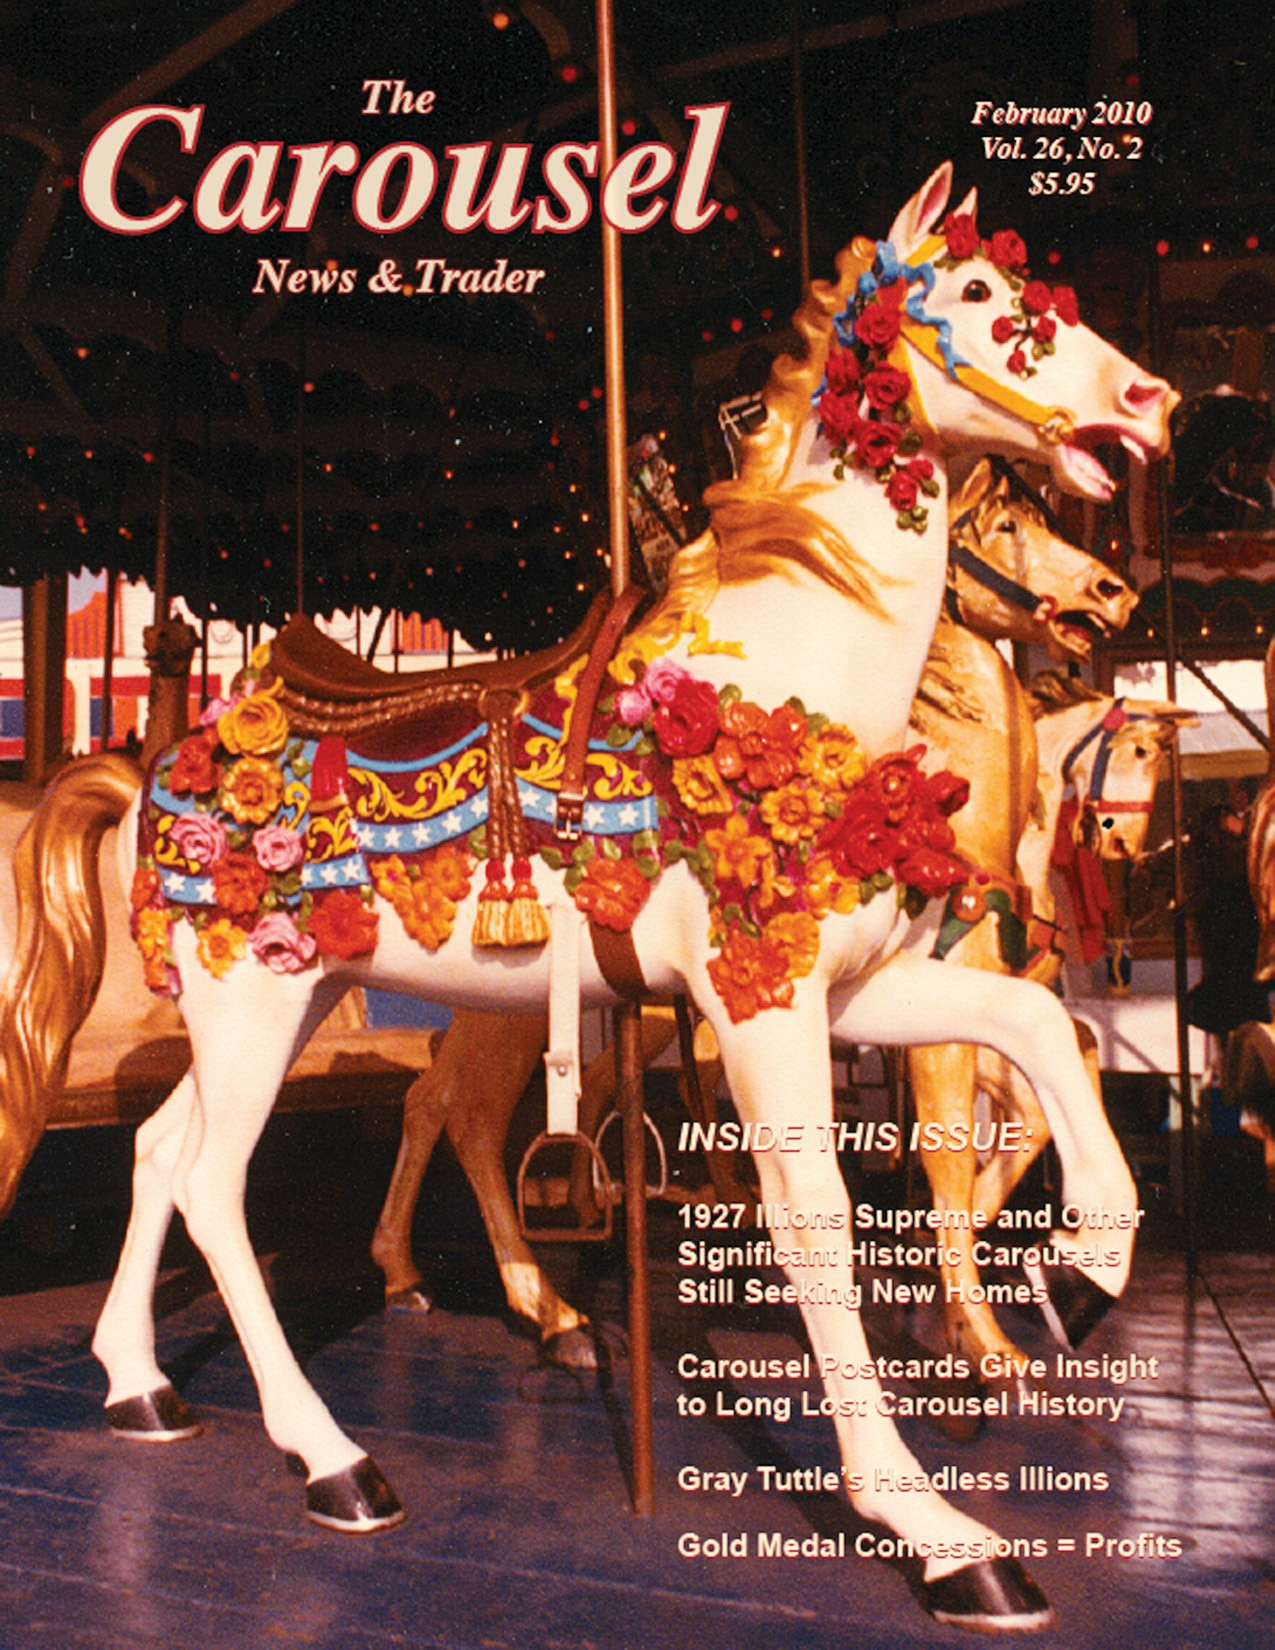 Issue No. 2, Vol. 26 – February 2010